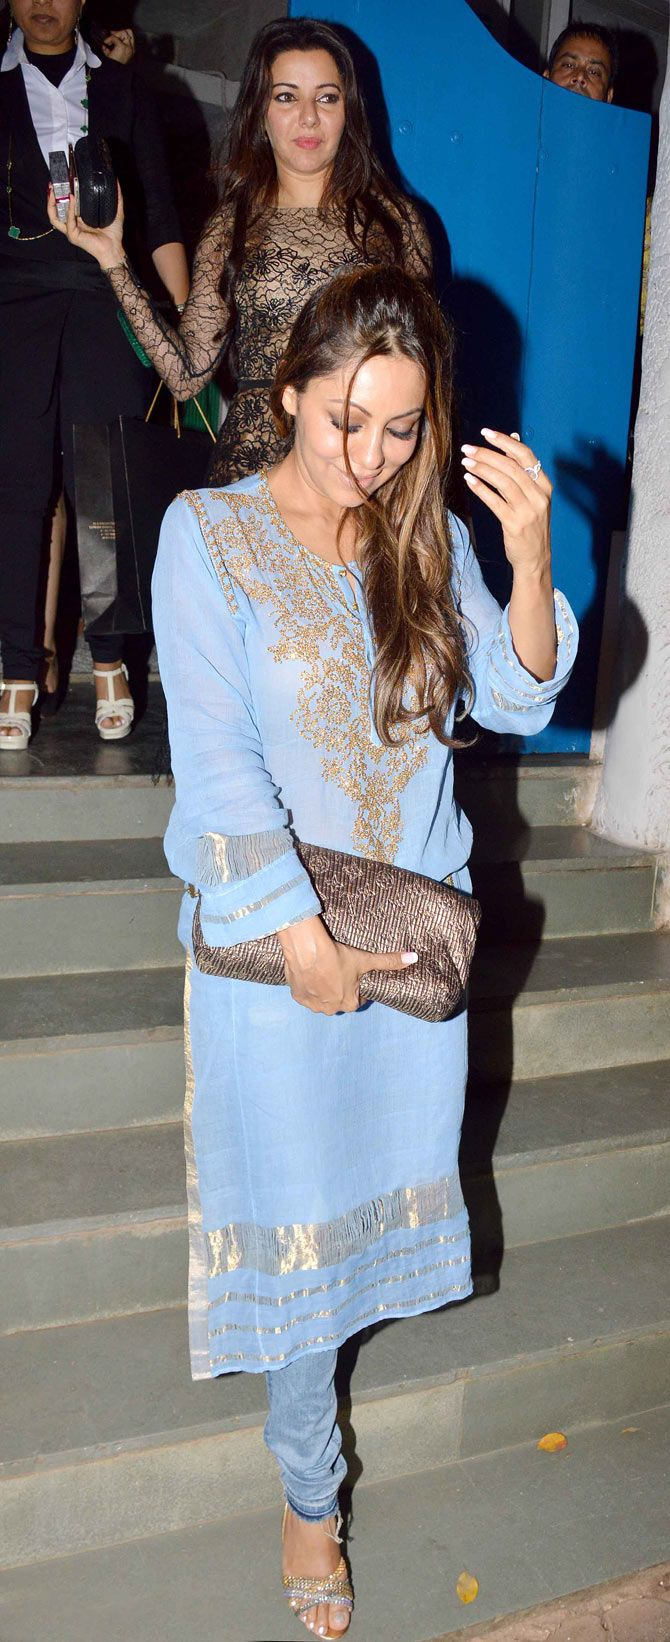 Gauri Khan with Kehkashan Patel at Olive. #Bollywood #Fashion #Style #Beauty